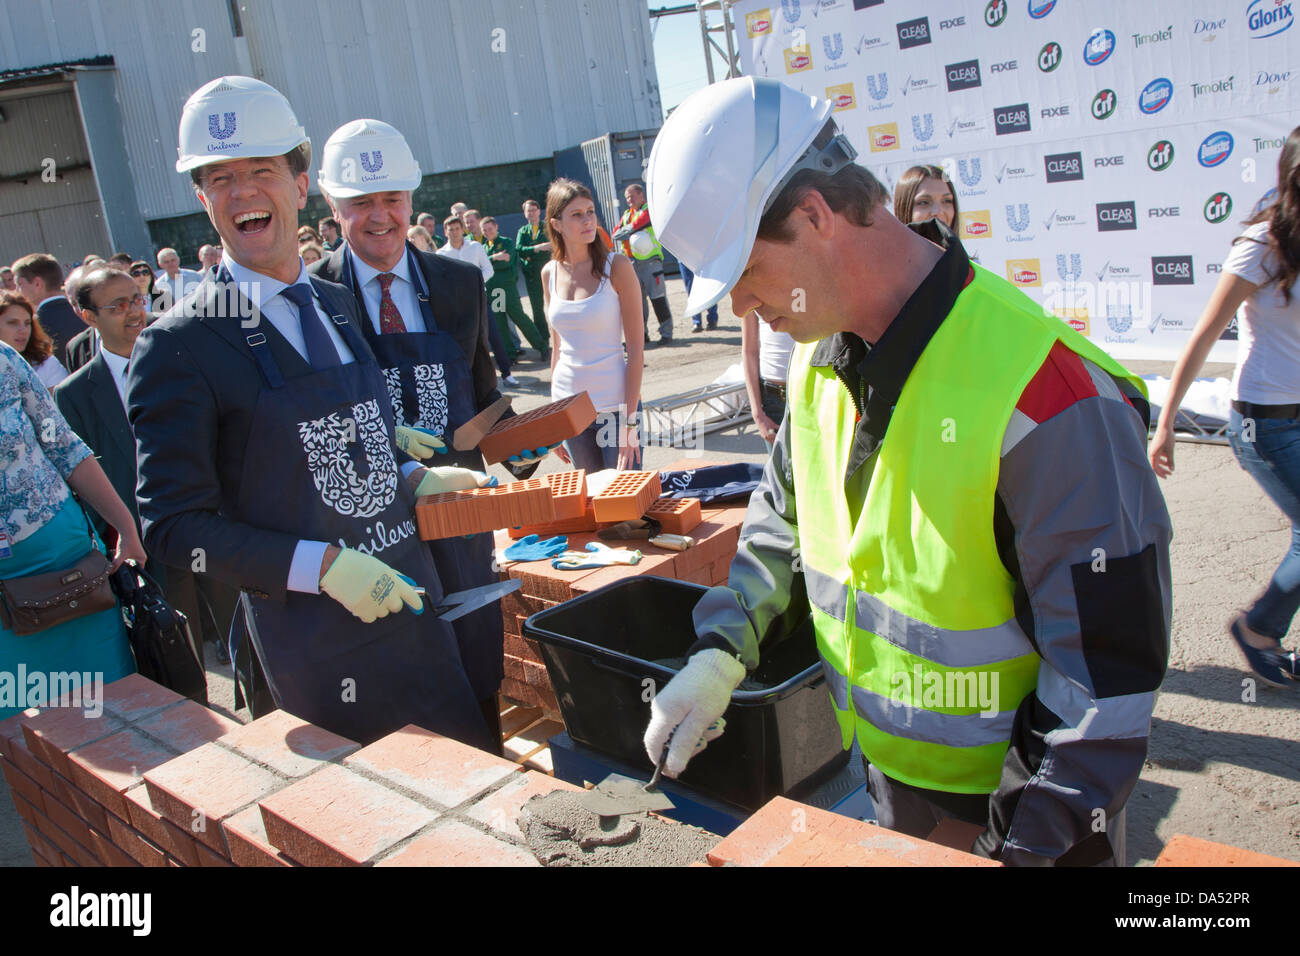 Dutch prime minister Mark Rutte takes part in a stone-laying ceremony for a new factory of Unilever in St. Petersburg, - Stock Image